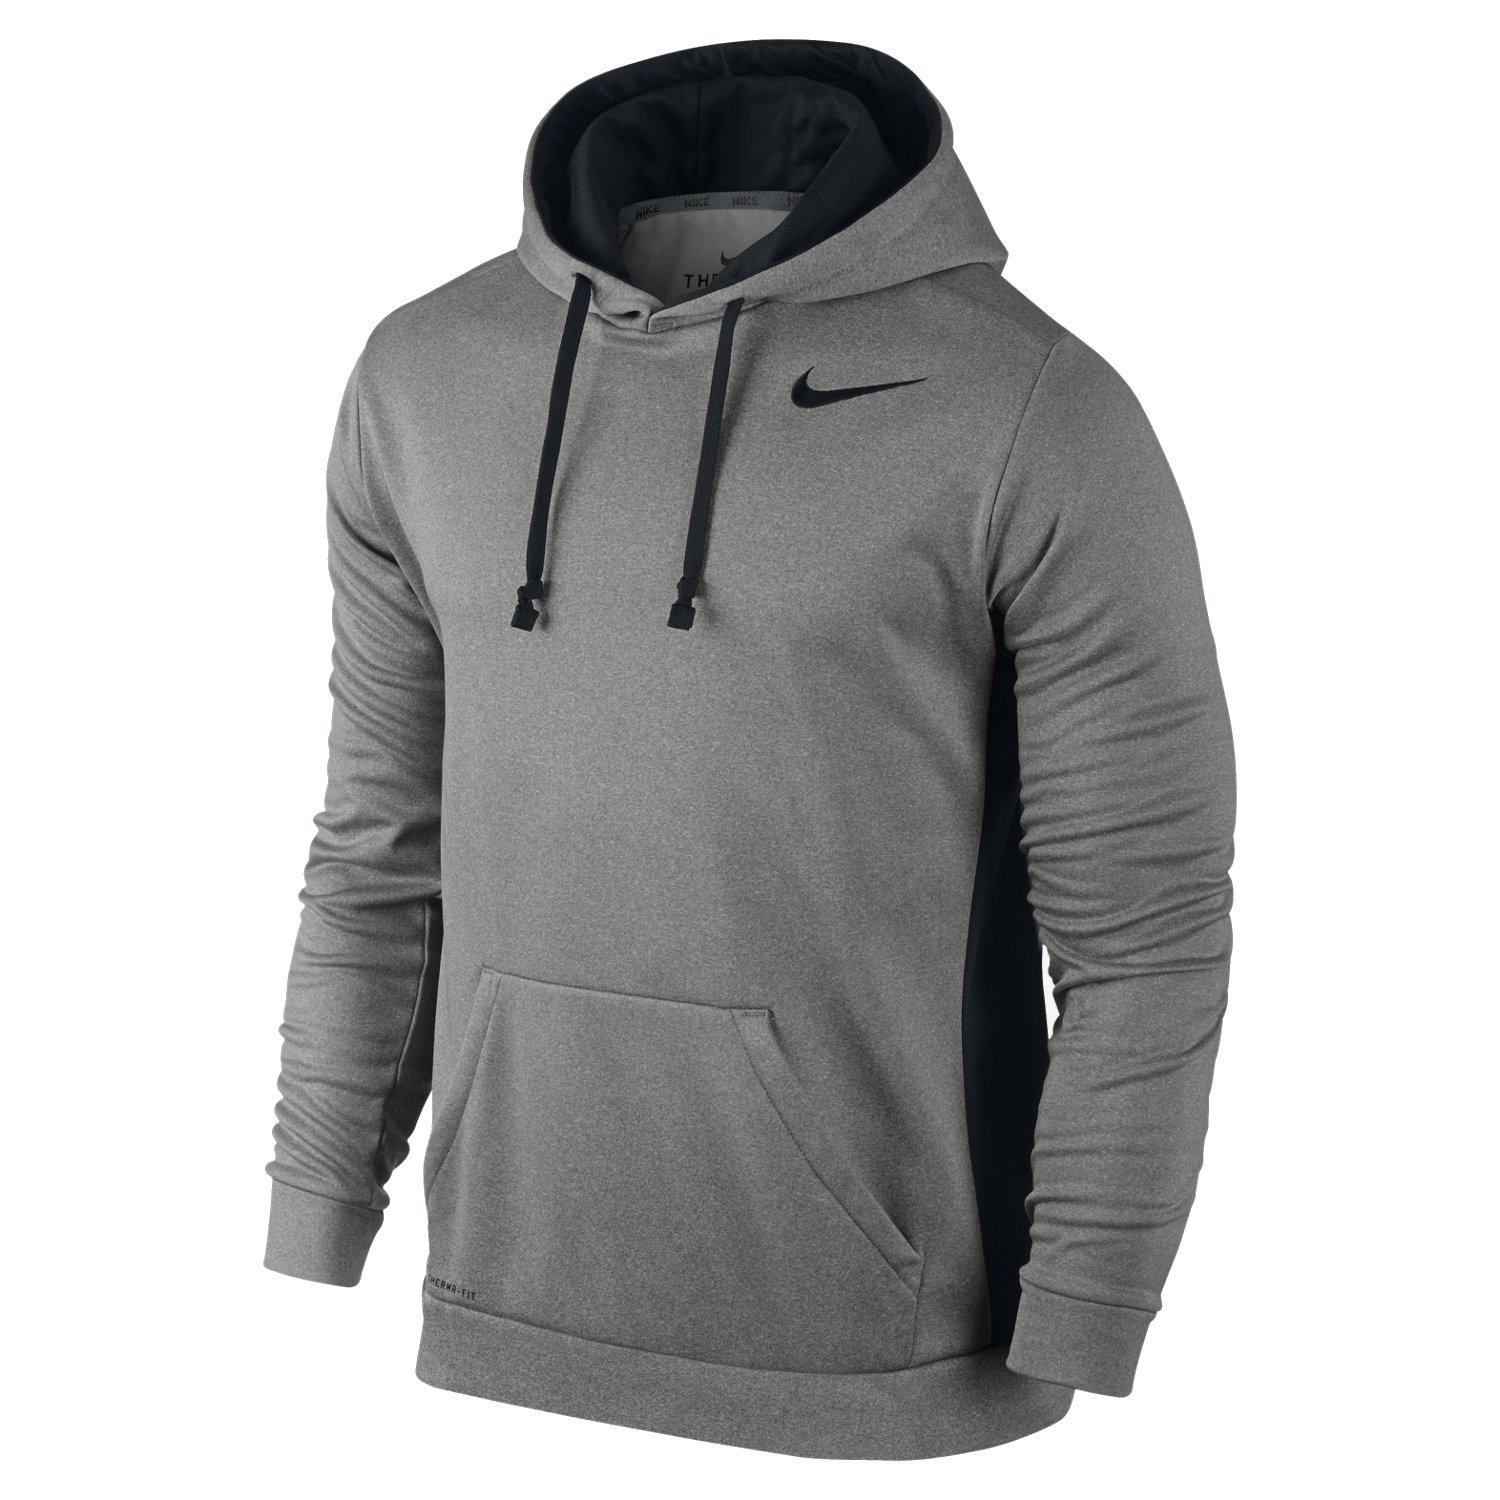 beauty new lifestyle vast selection Nike Men's KO Therma Fit Pullover Hoodie Sweatshirt Grey Black 3XL XXXL